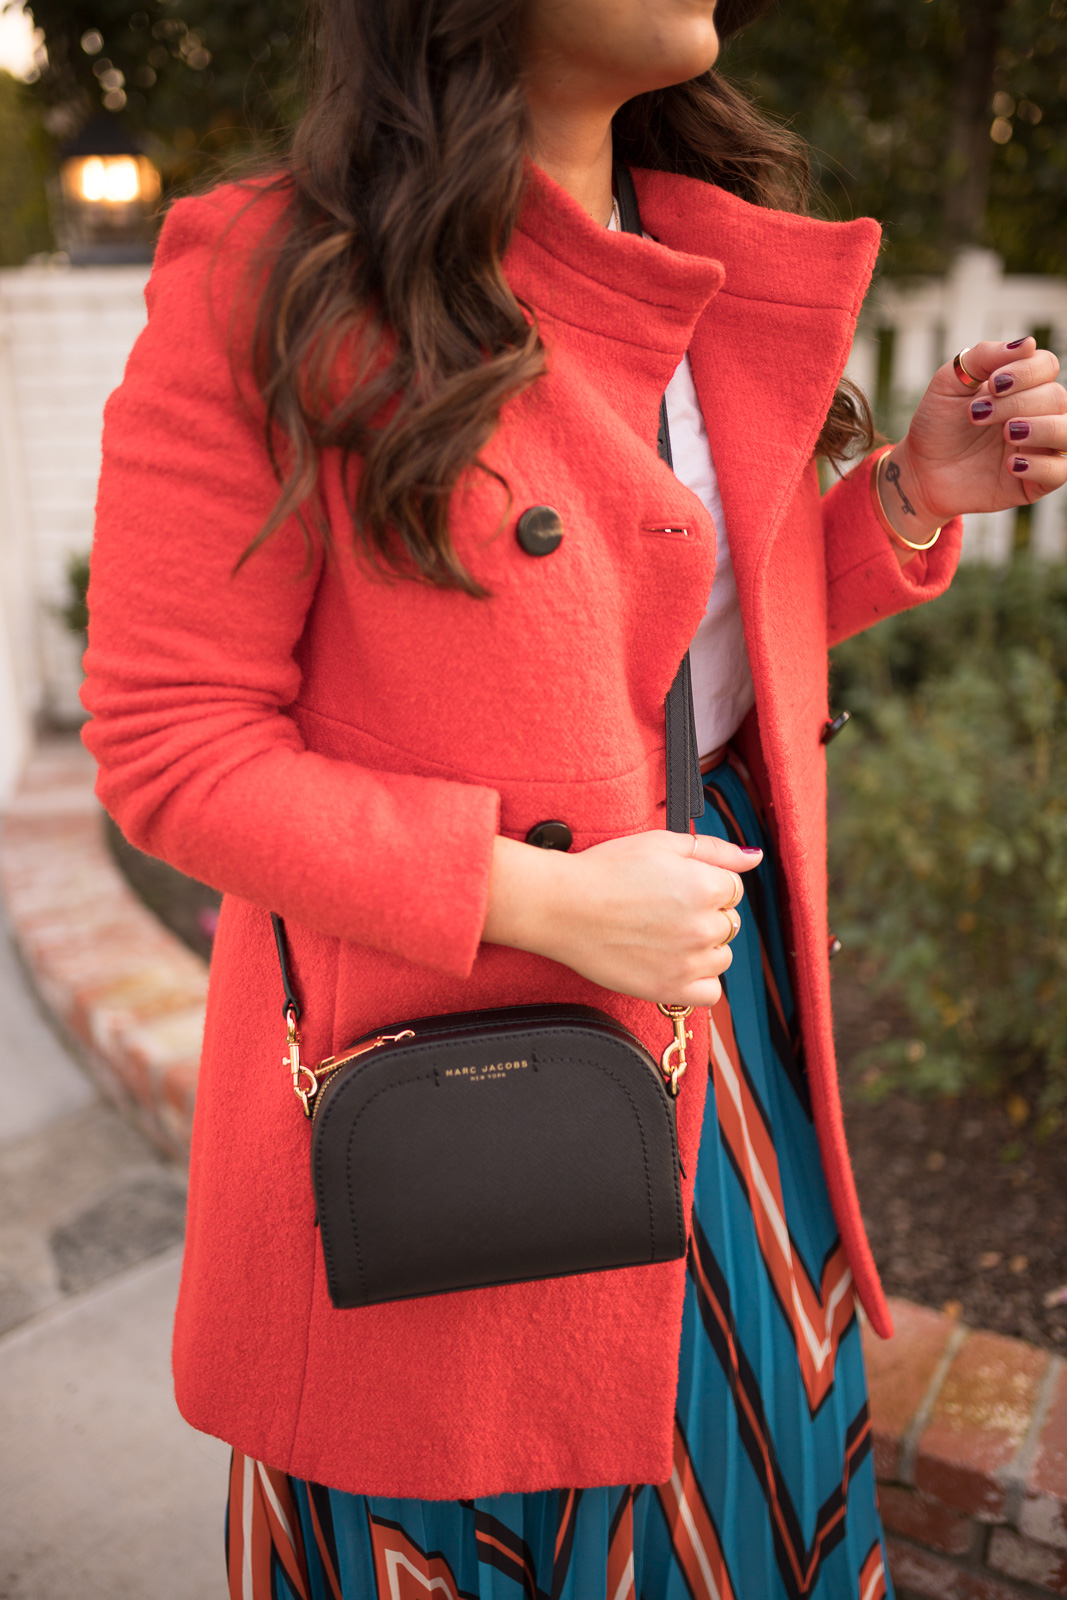 Red Coat Marc jacobs crossbody bag Pleated skirt